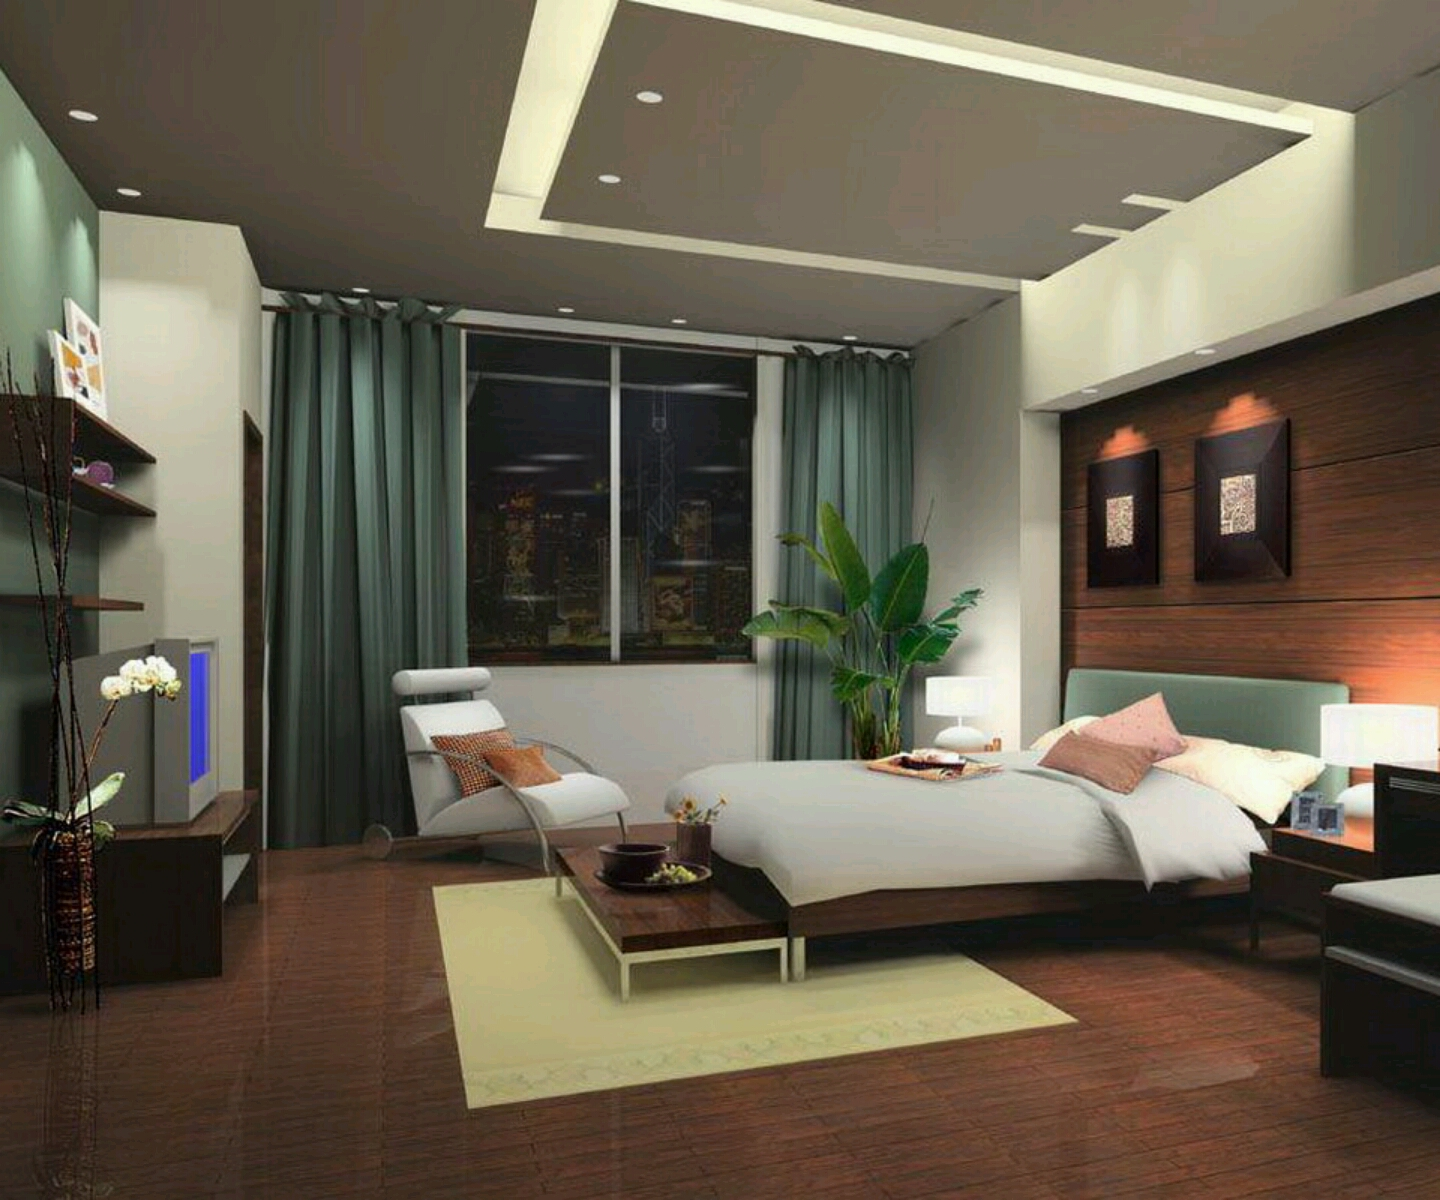 New Home Designs Latest.: Modern Bedrooms Designs Best Ideas